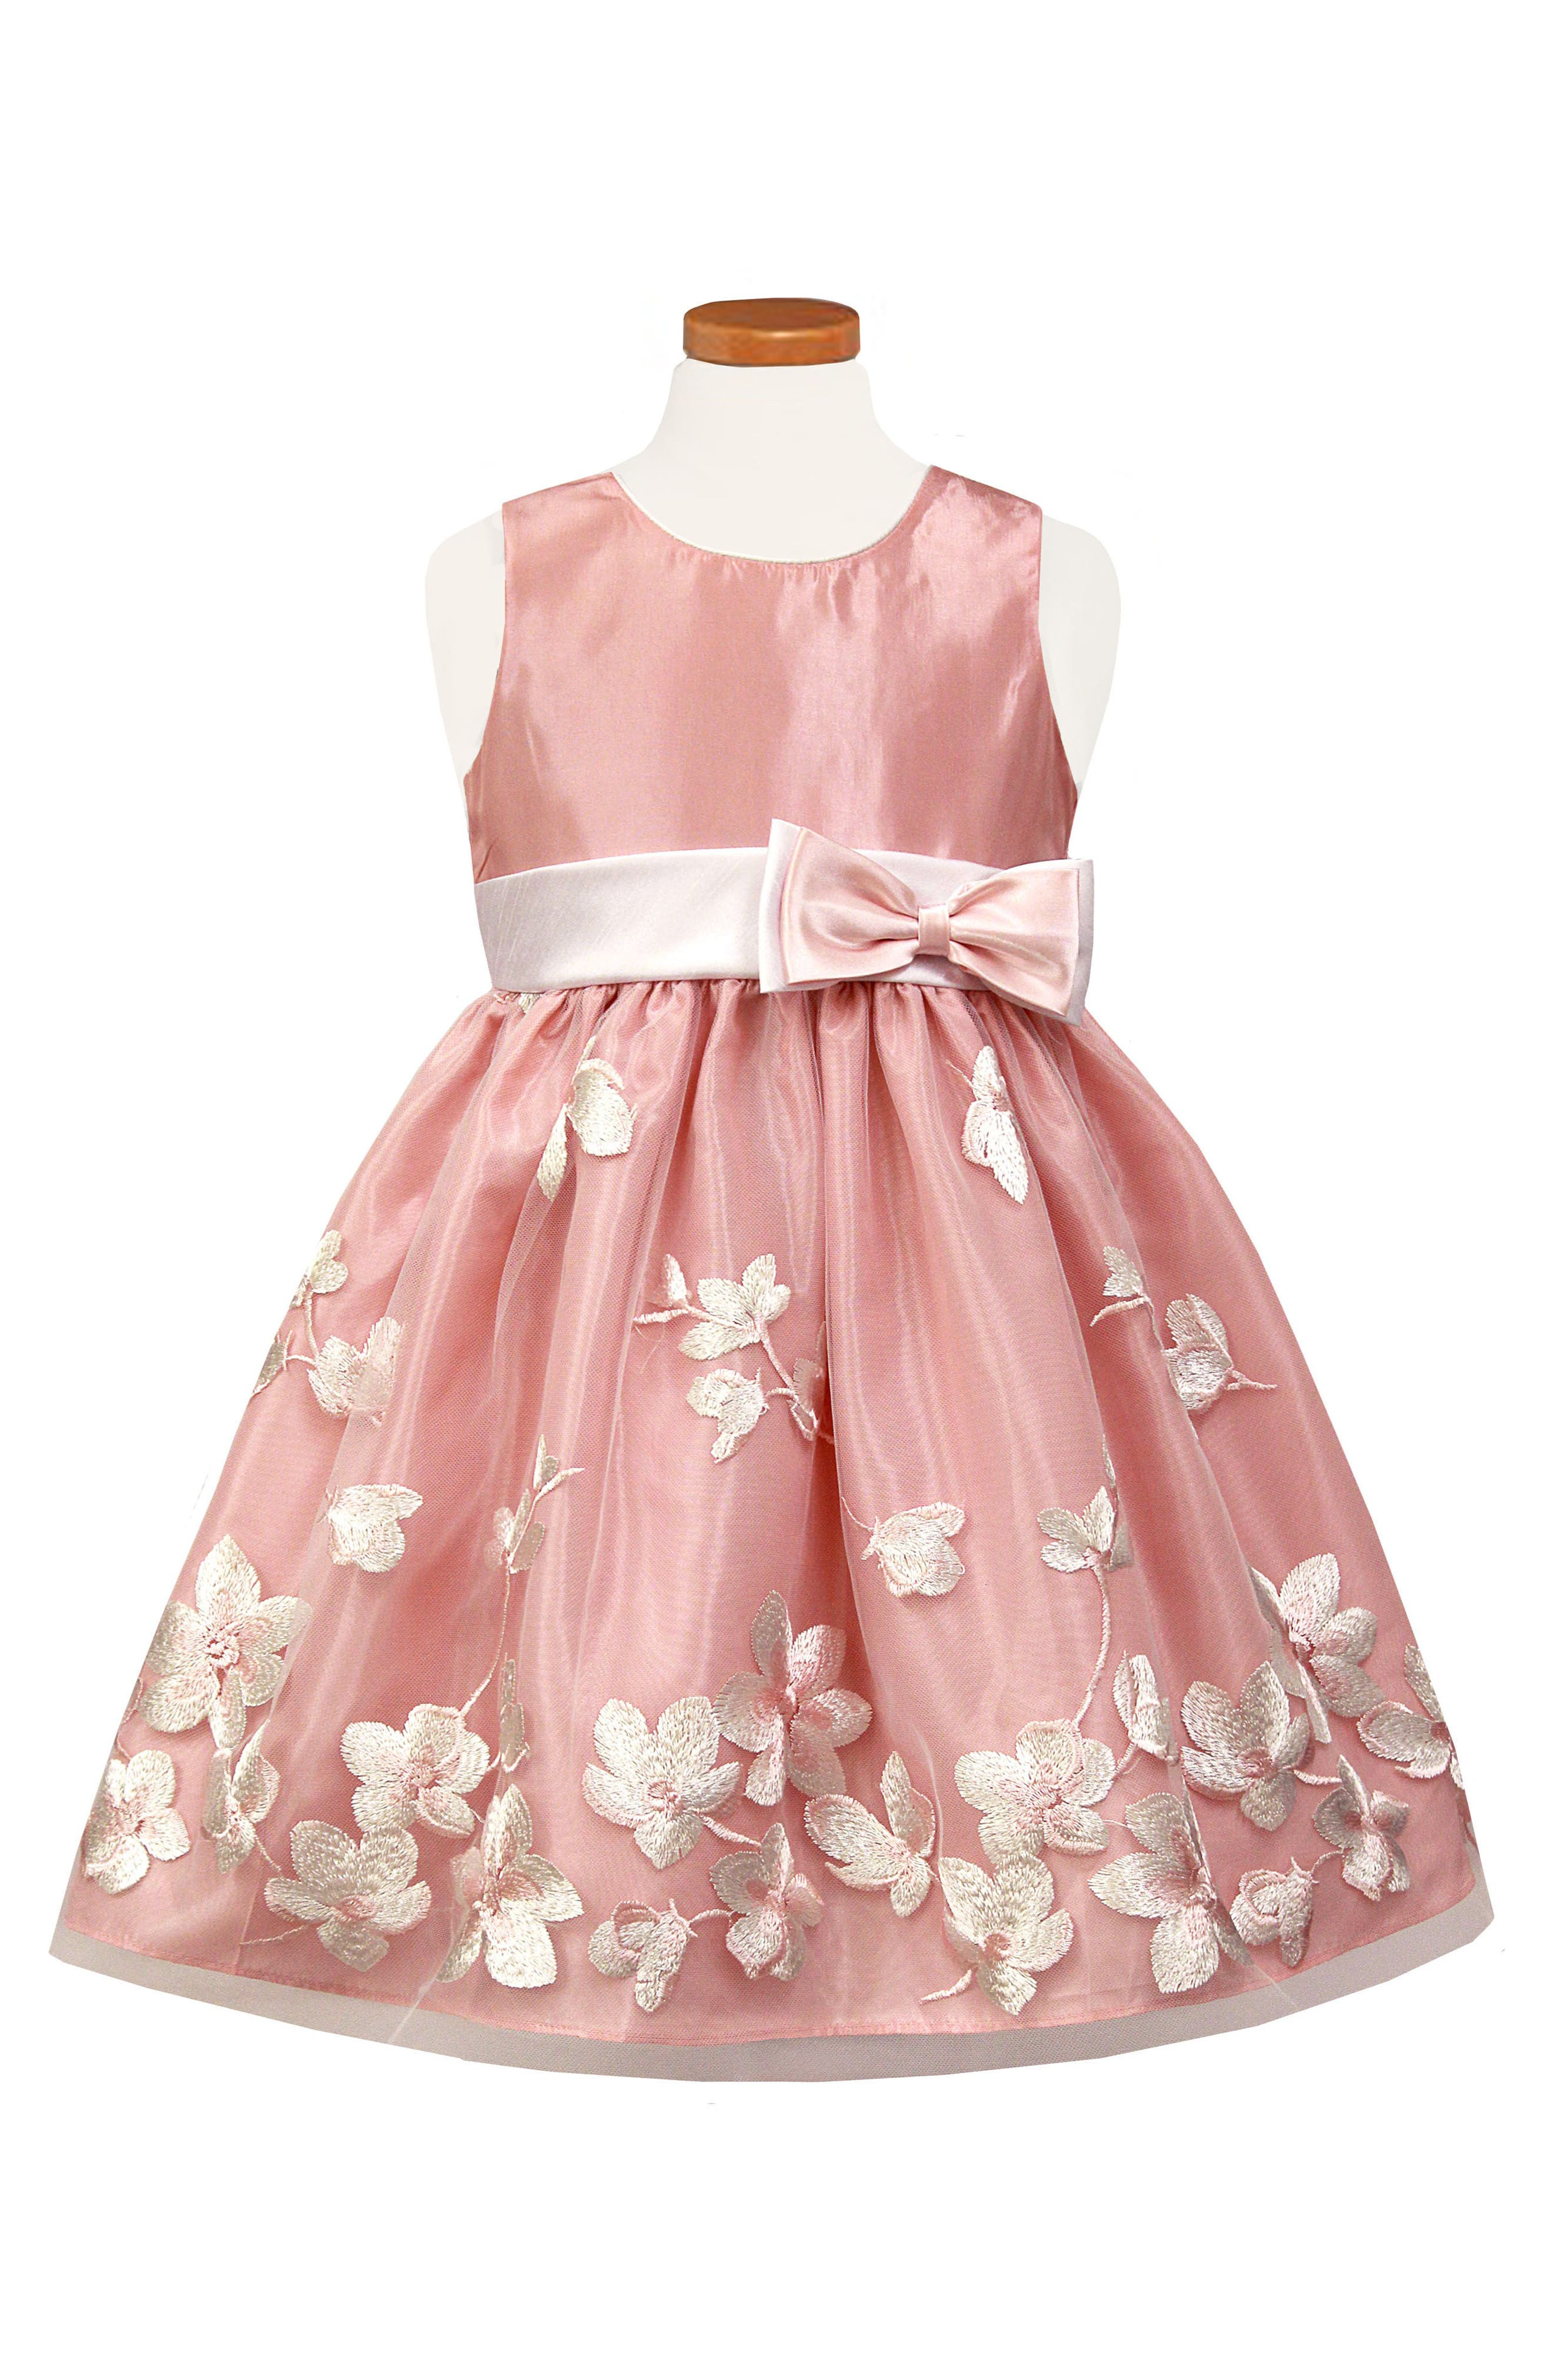 Embroidered Floral Tulle Party Dress,                             Main thumbnail 1, color,                             Rose